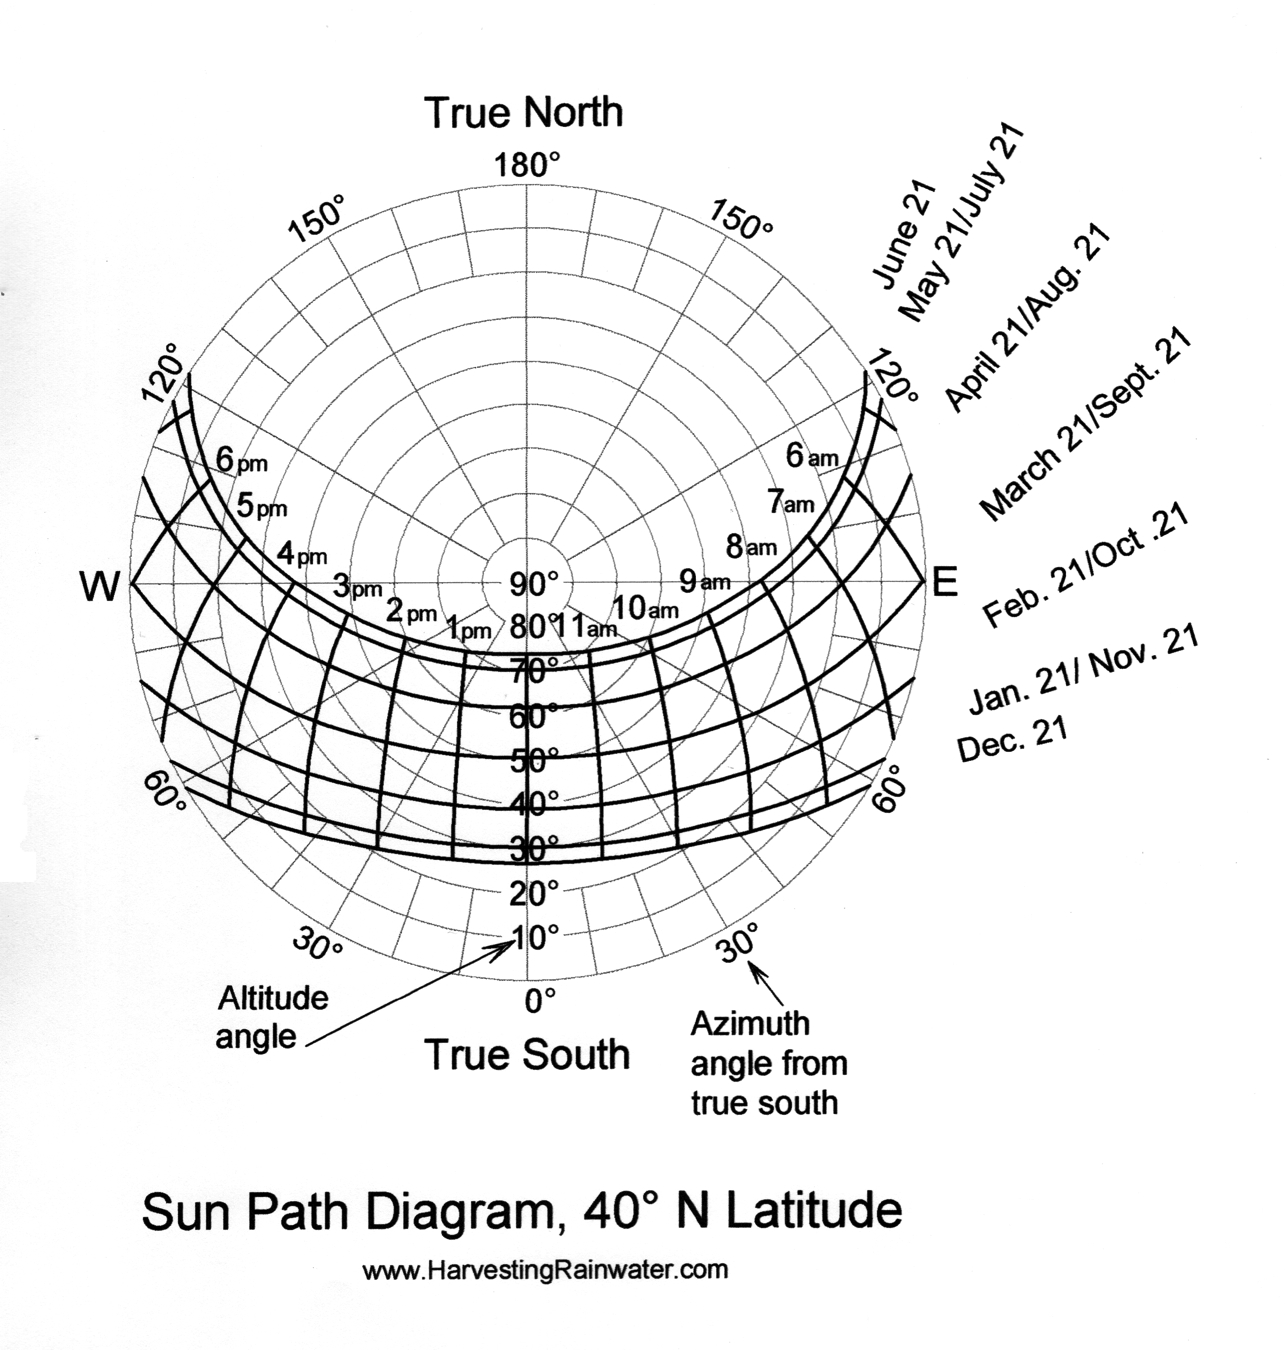 Sun Path Diagram 40o N Latitude